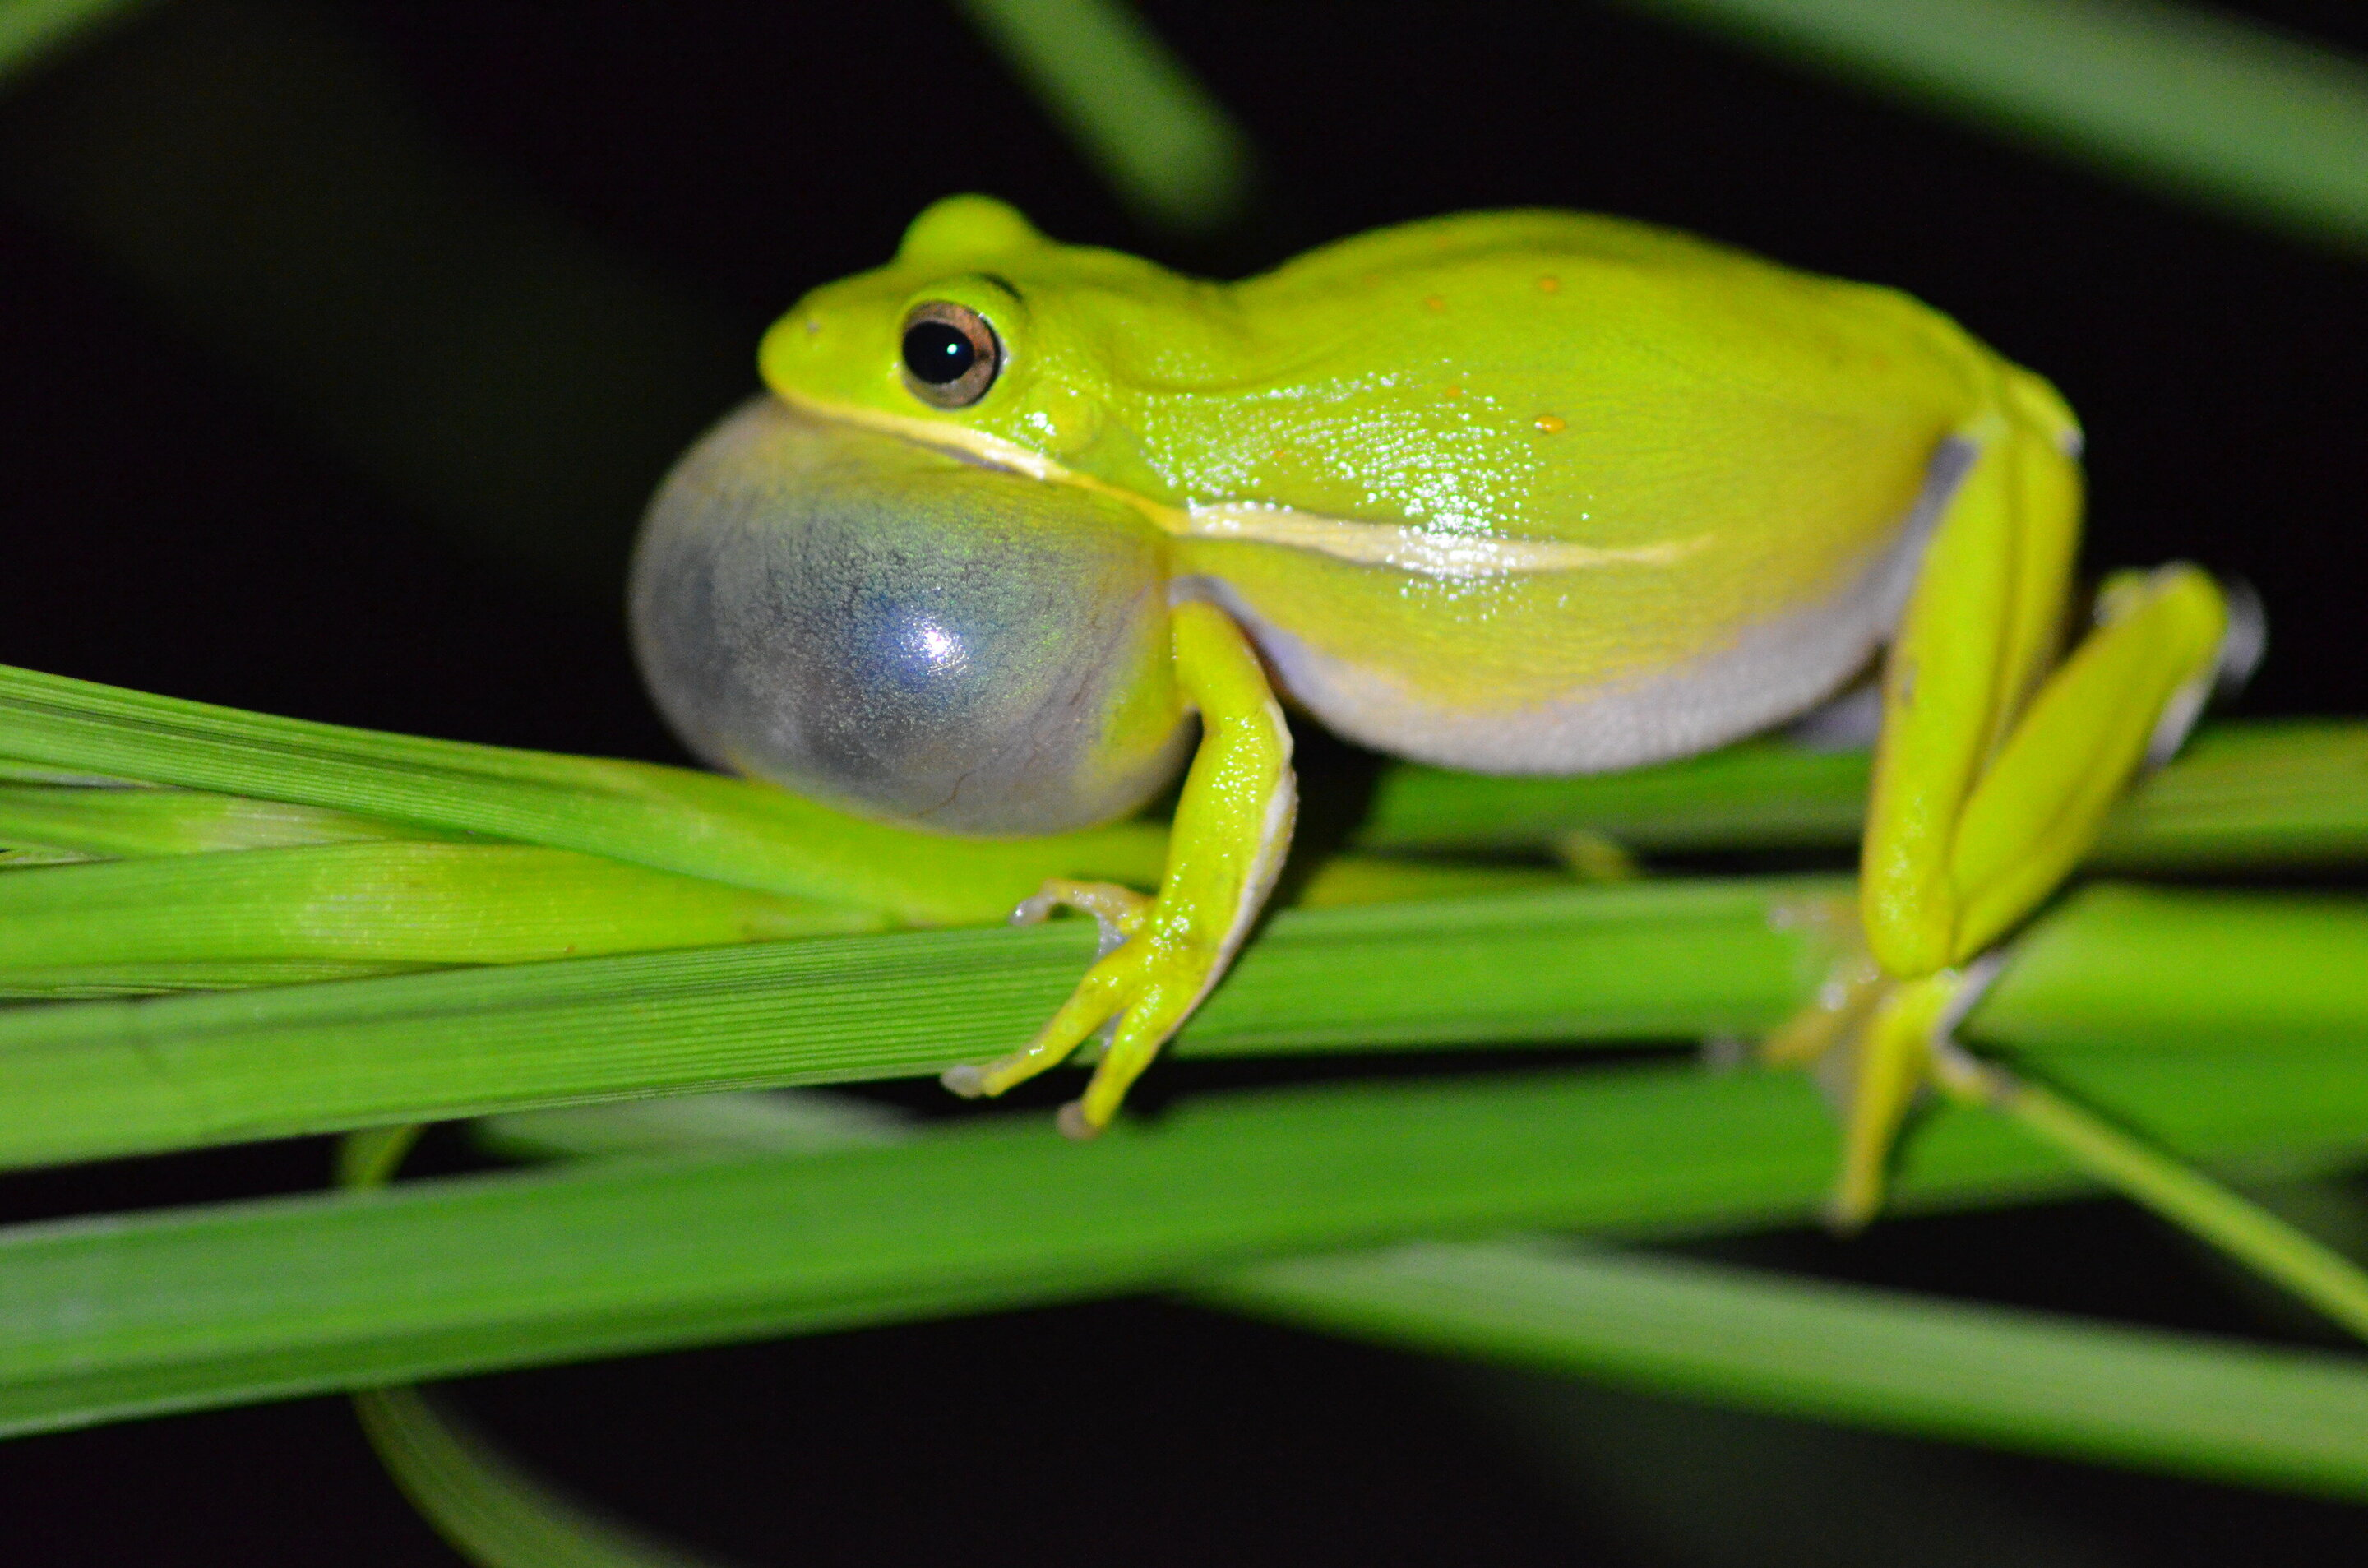 This frog has lungs that act like noise-canceling headphones, study shows